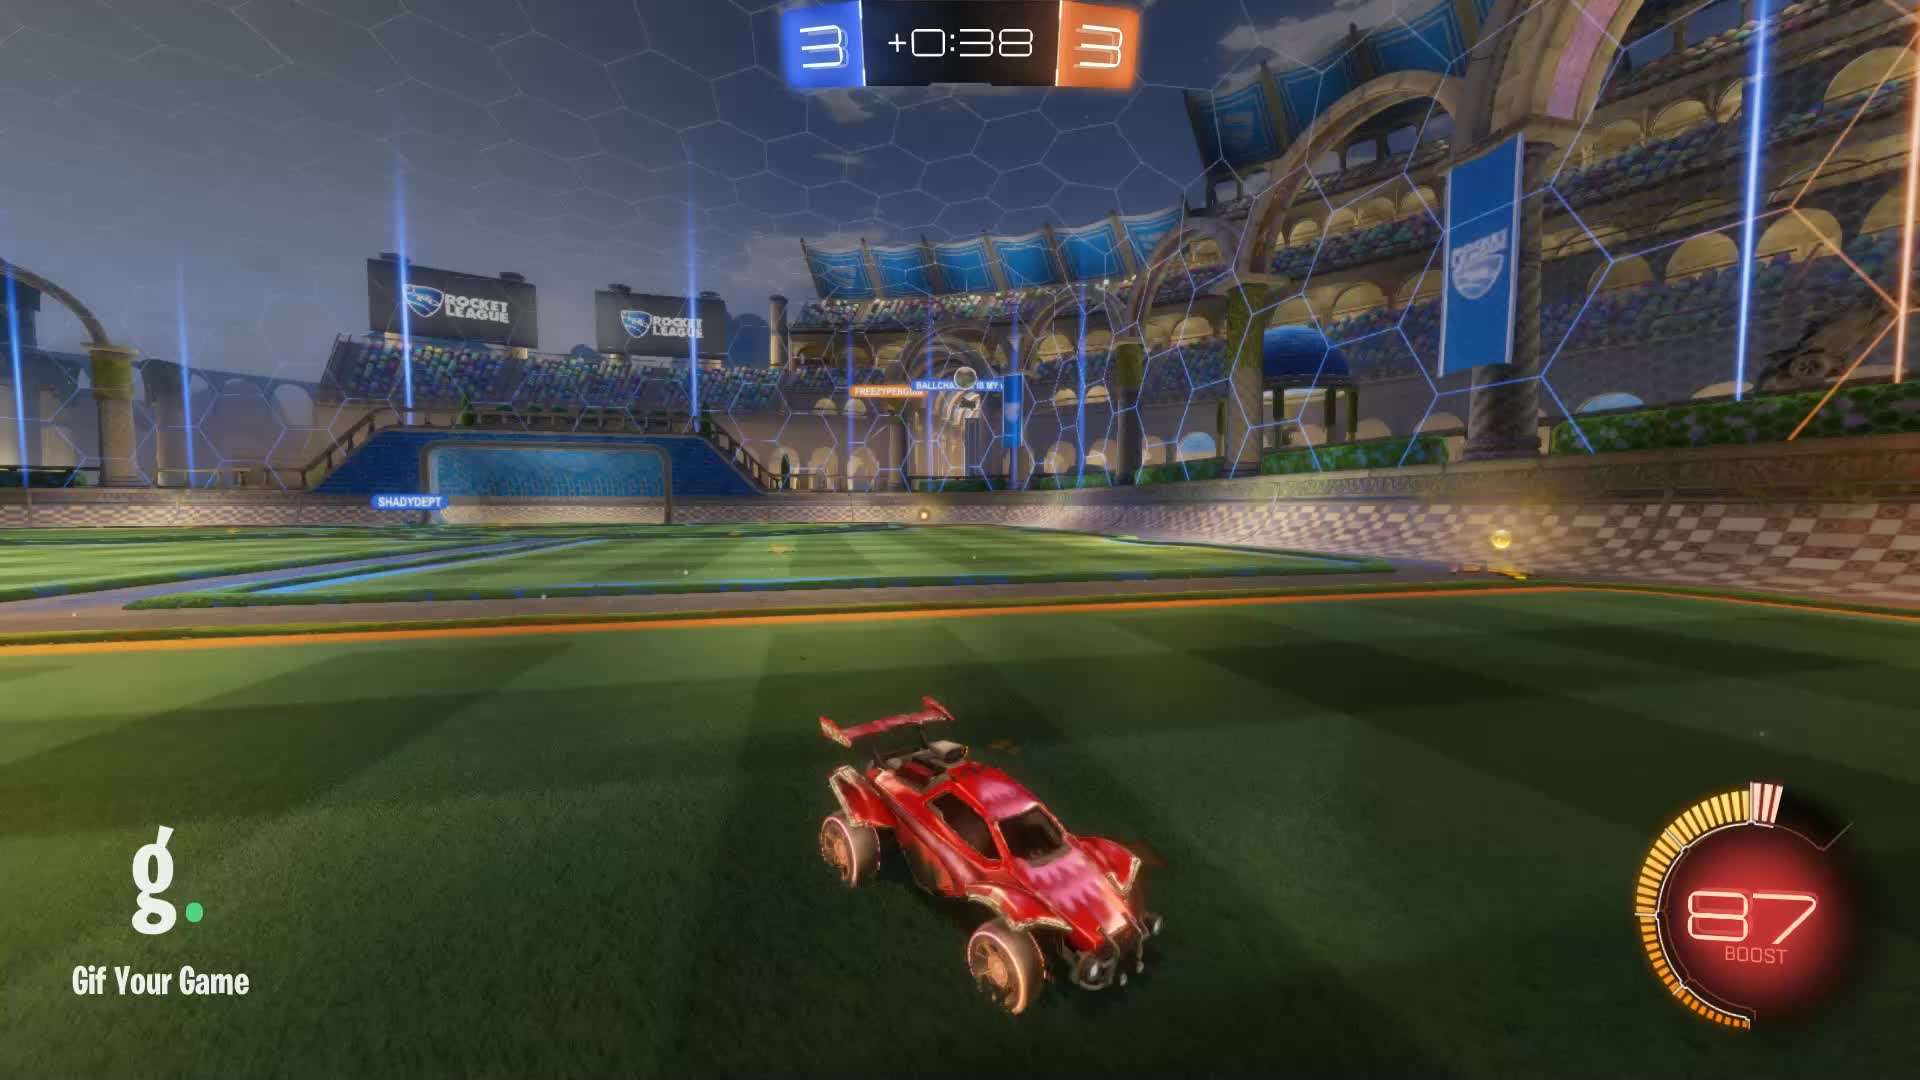 Gif Your Game, GifYourGame, Panthers   BroKroki, Rocket League, RocketLeague, Goal 7: Panthers   BroKroki GIFs